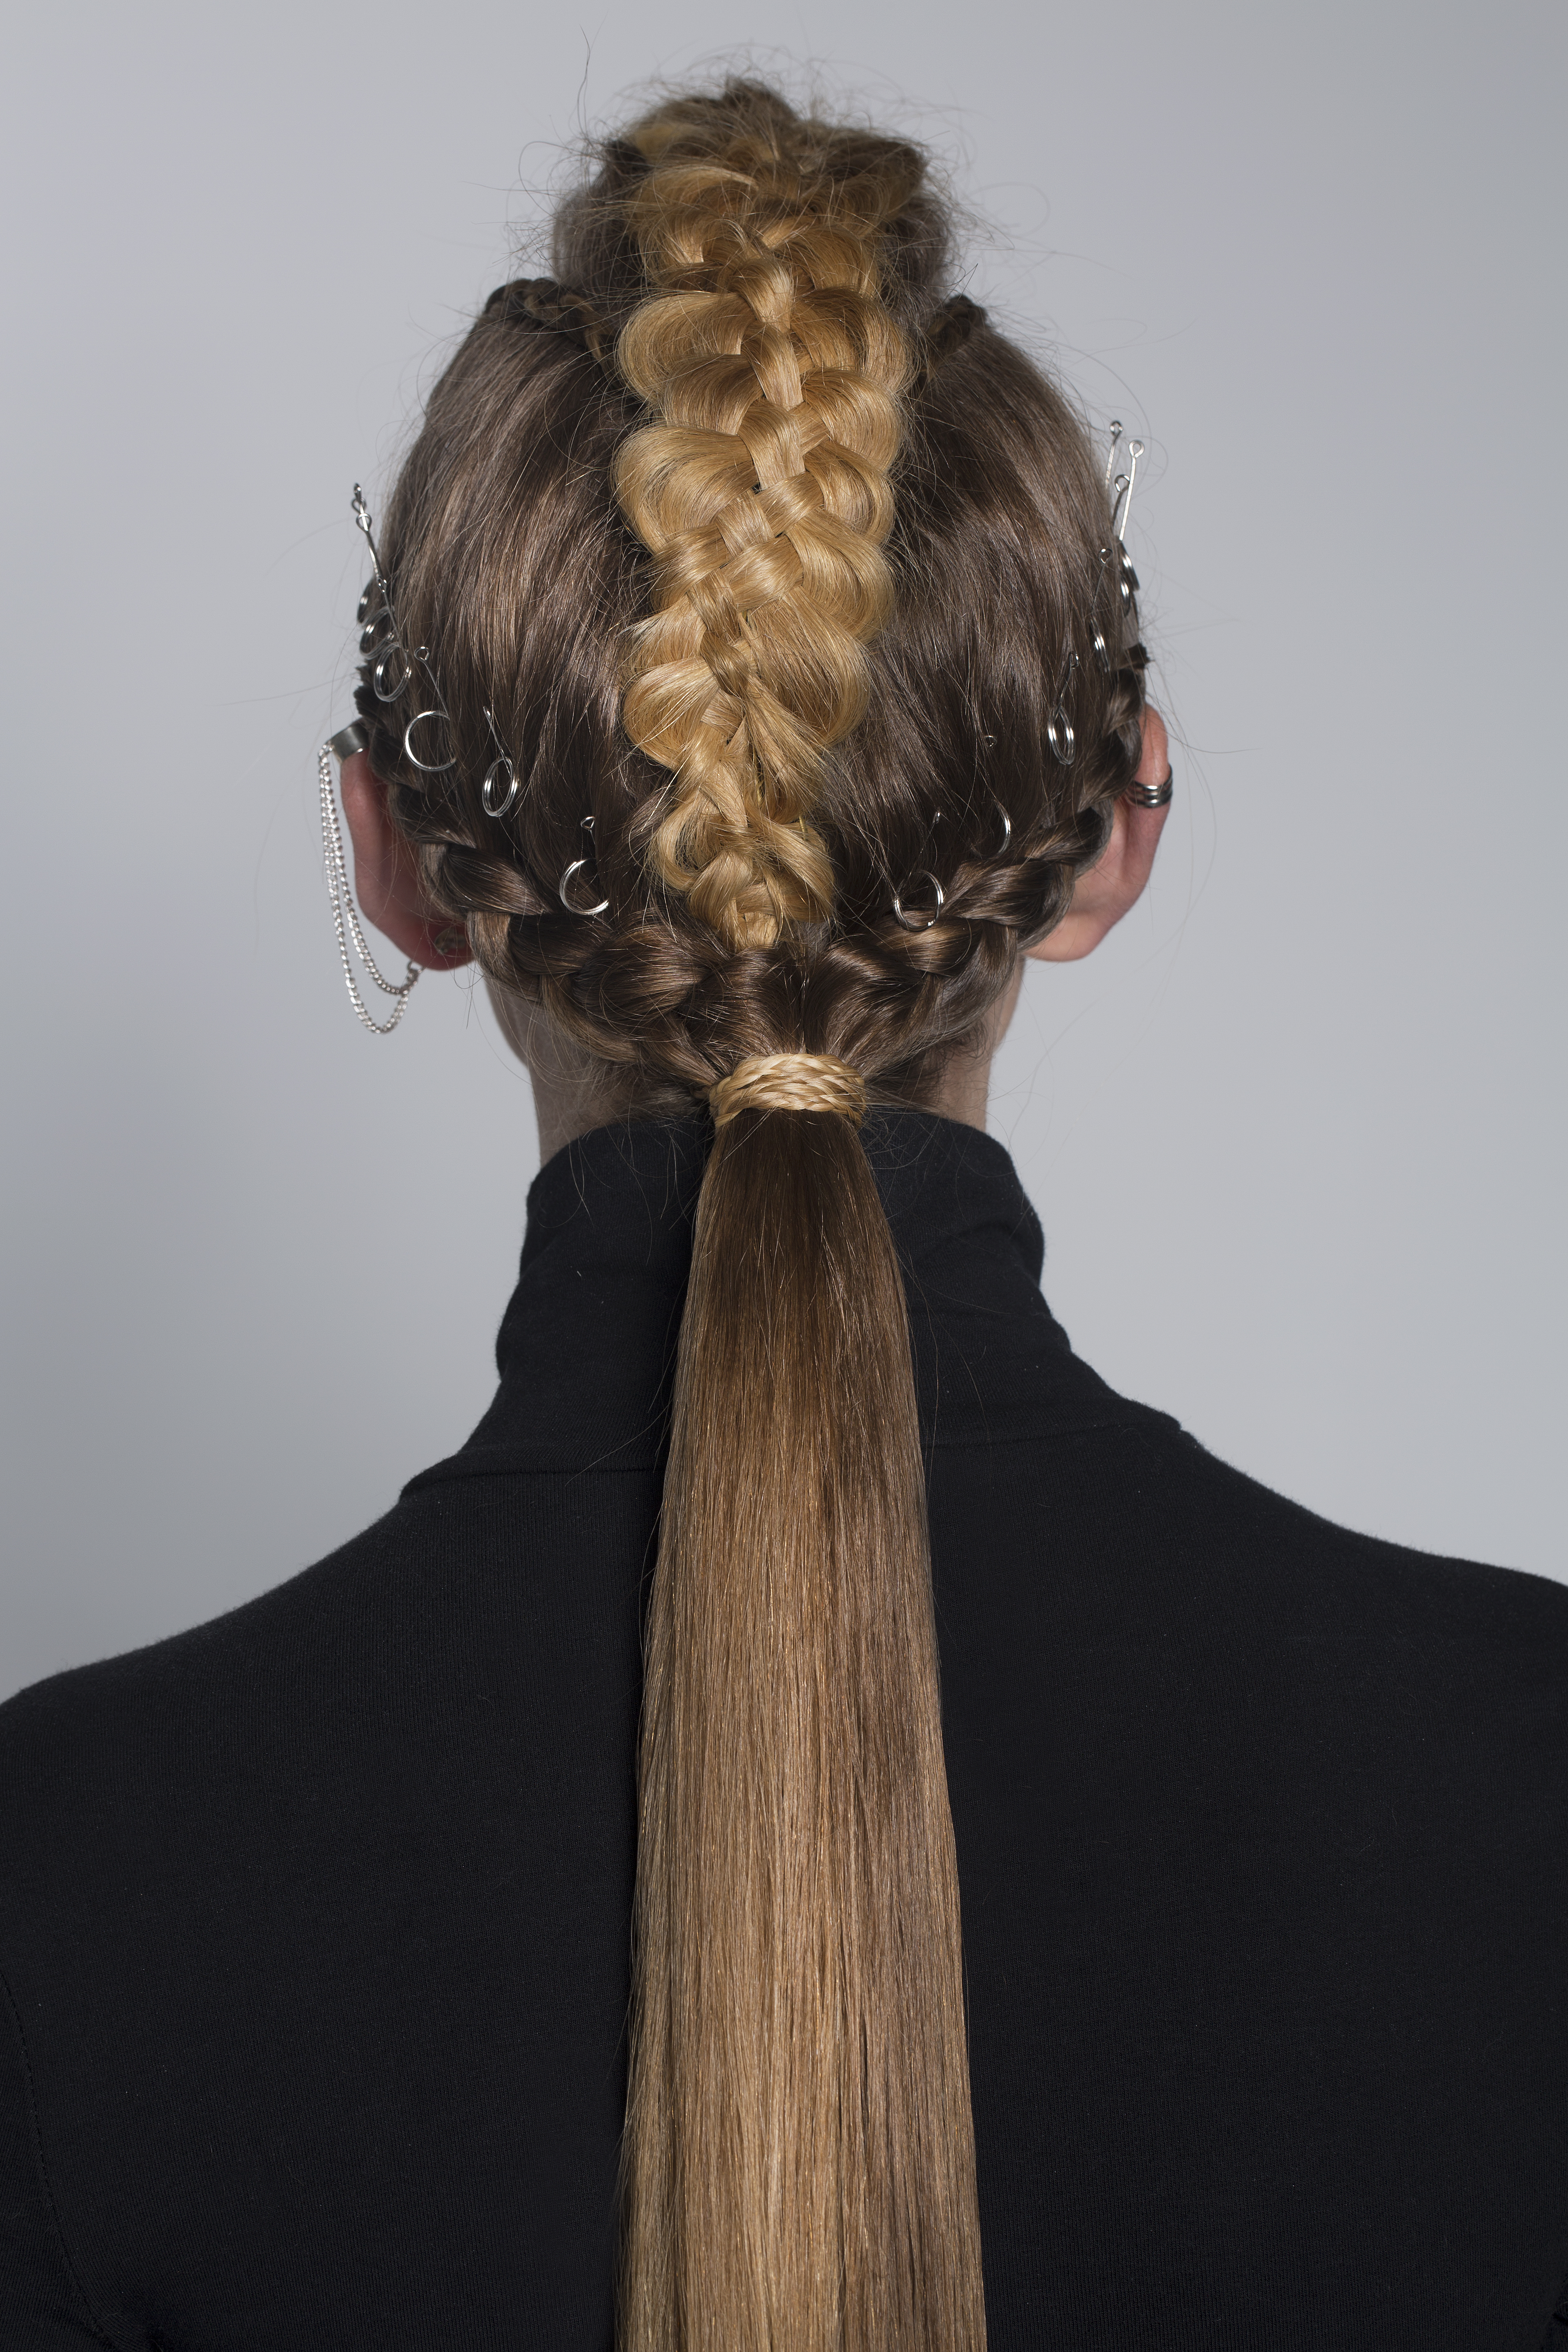 pony, ponytail, bubble, circle, braid, messy, chic, updo, going out, hairstyle, date night, dosha, dosha creative team